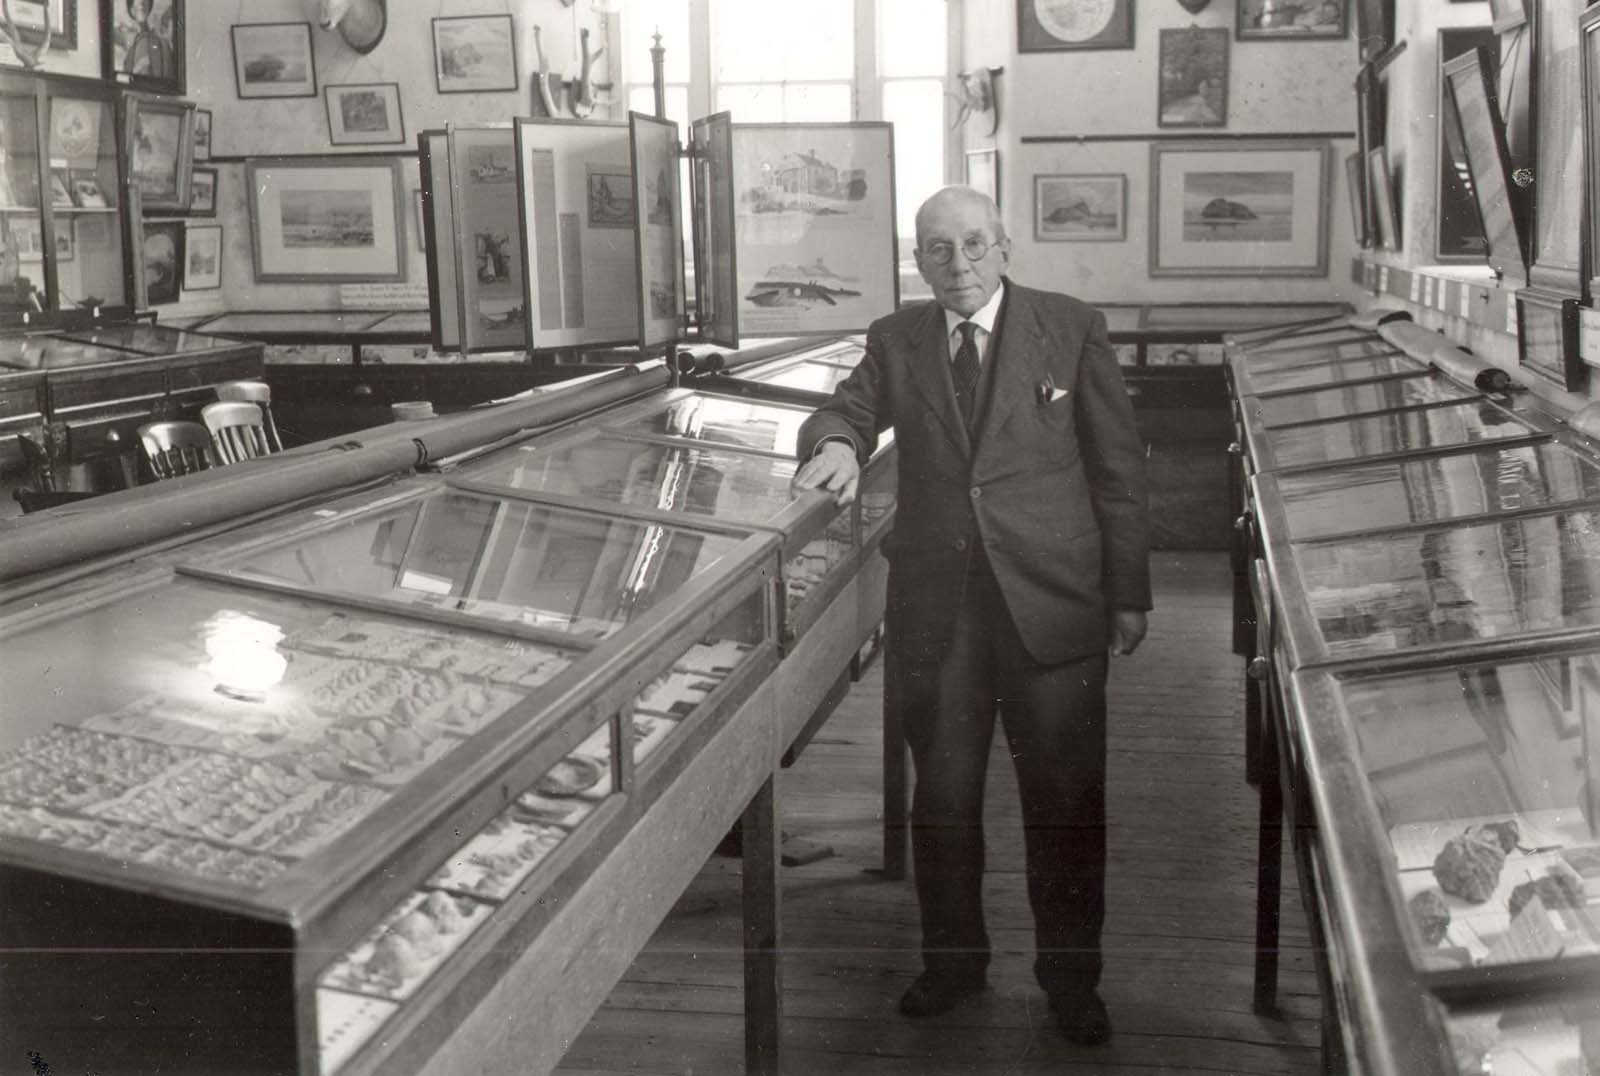 black and white photo of a man in amuseum gallery filled with display cases